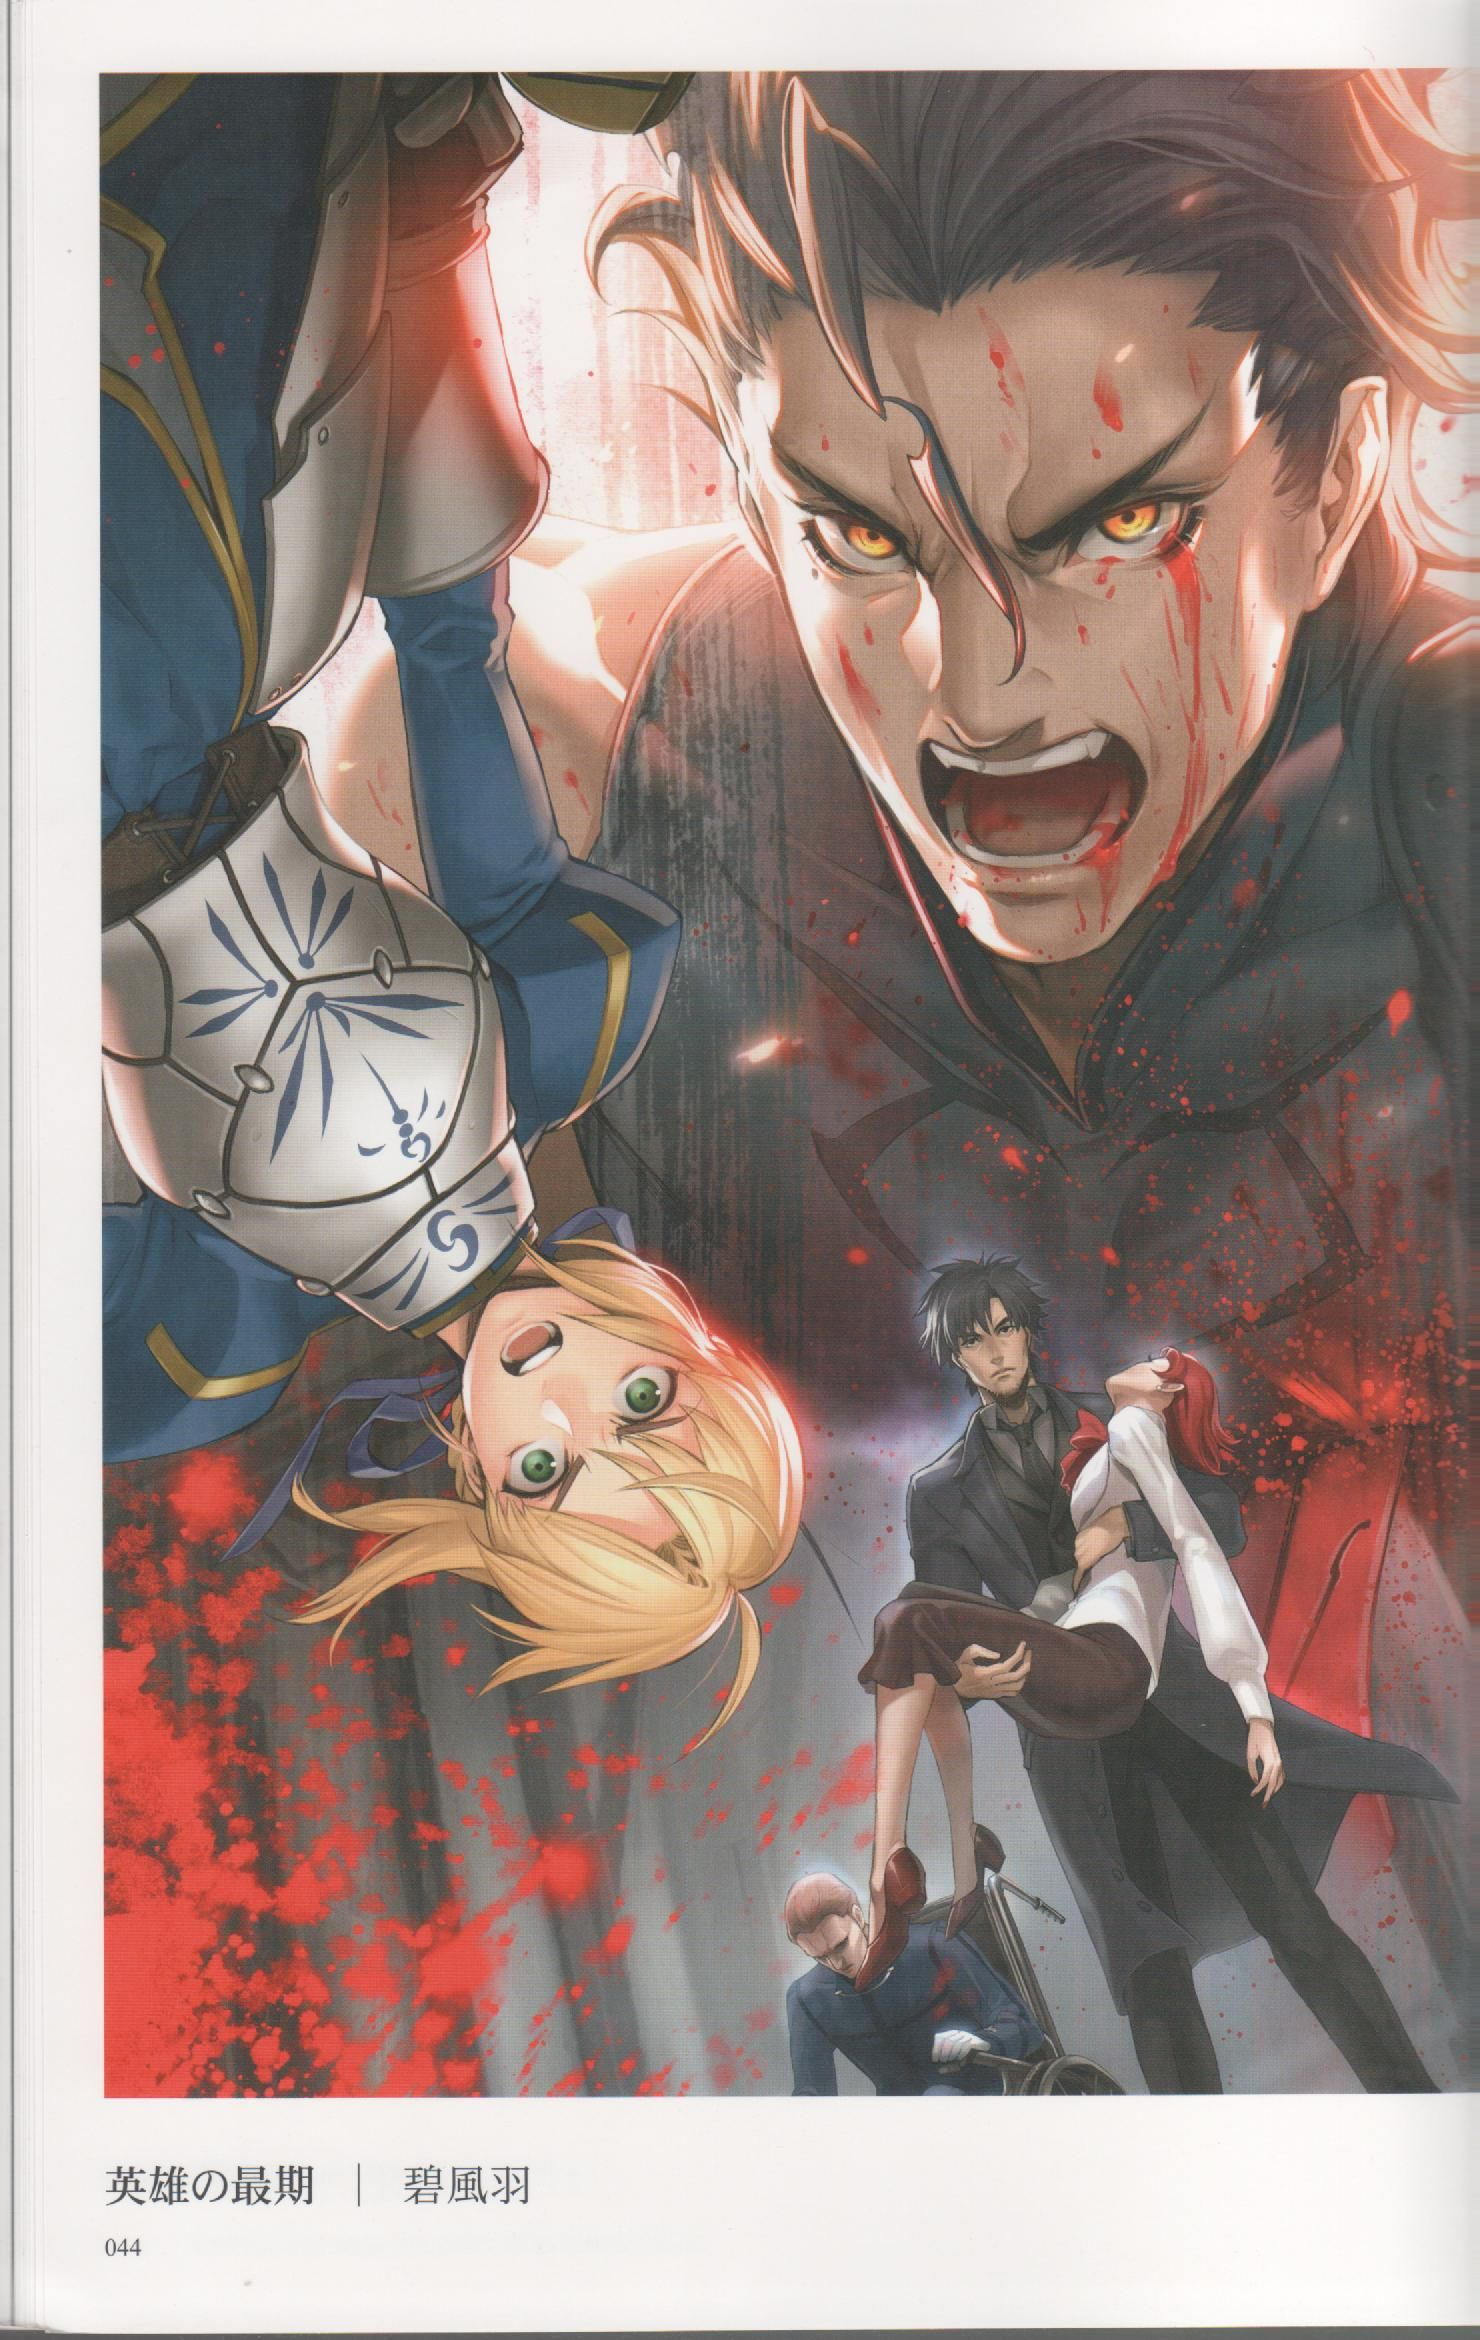 Fate/Zero... Poor Lancer/Diarmuid... But they did make a